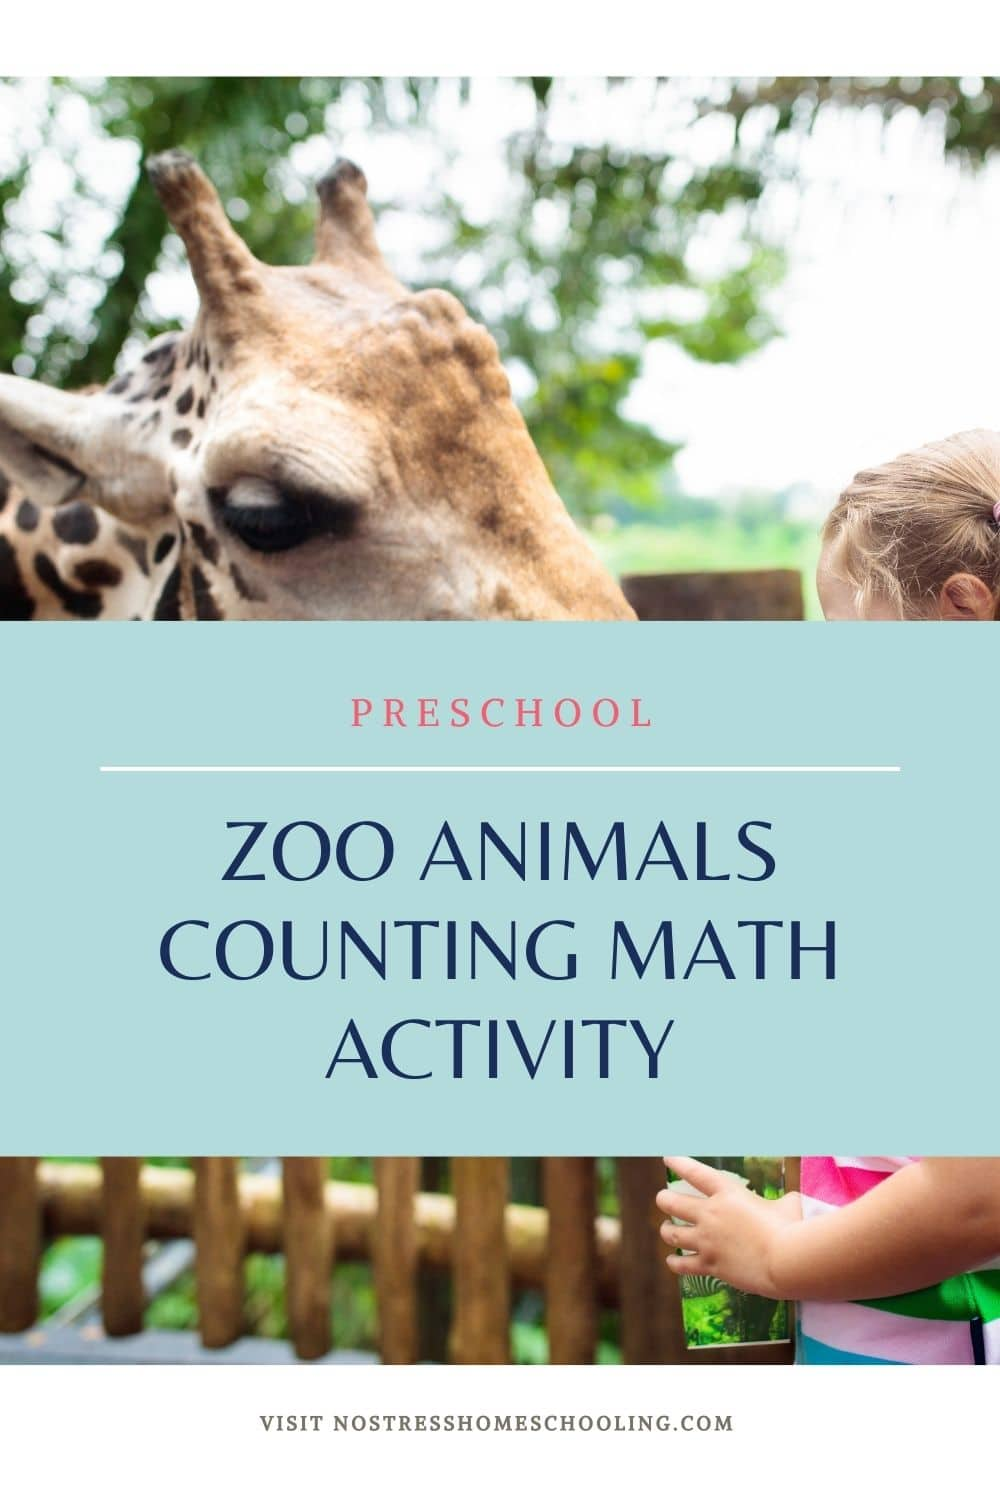 PIC OF PRESCHOOL ZOO ANIMALS COUNTING MATH ACTIVITY BLUE BACKGROUND